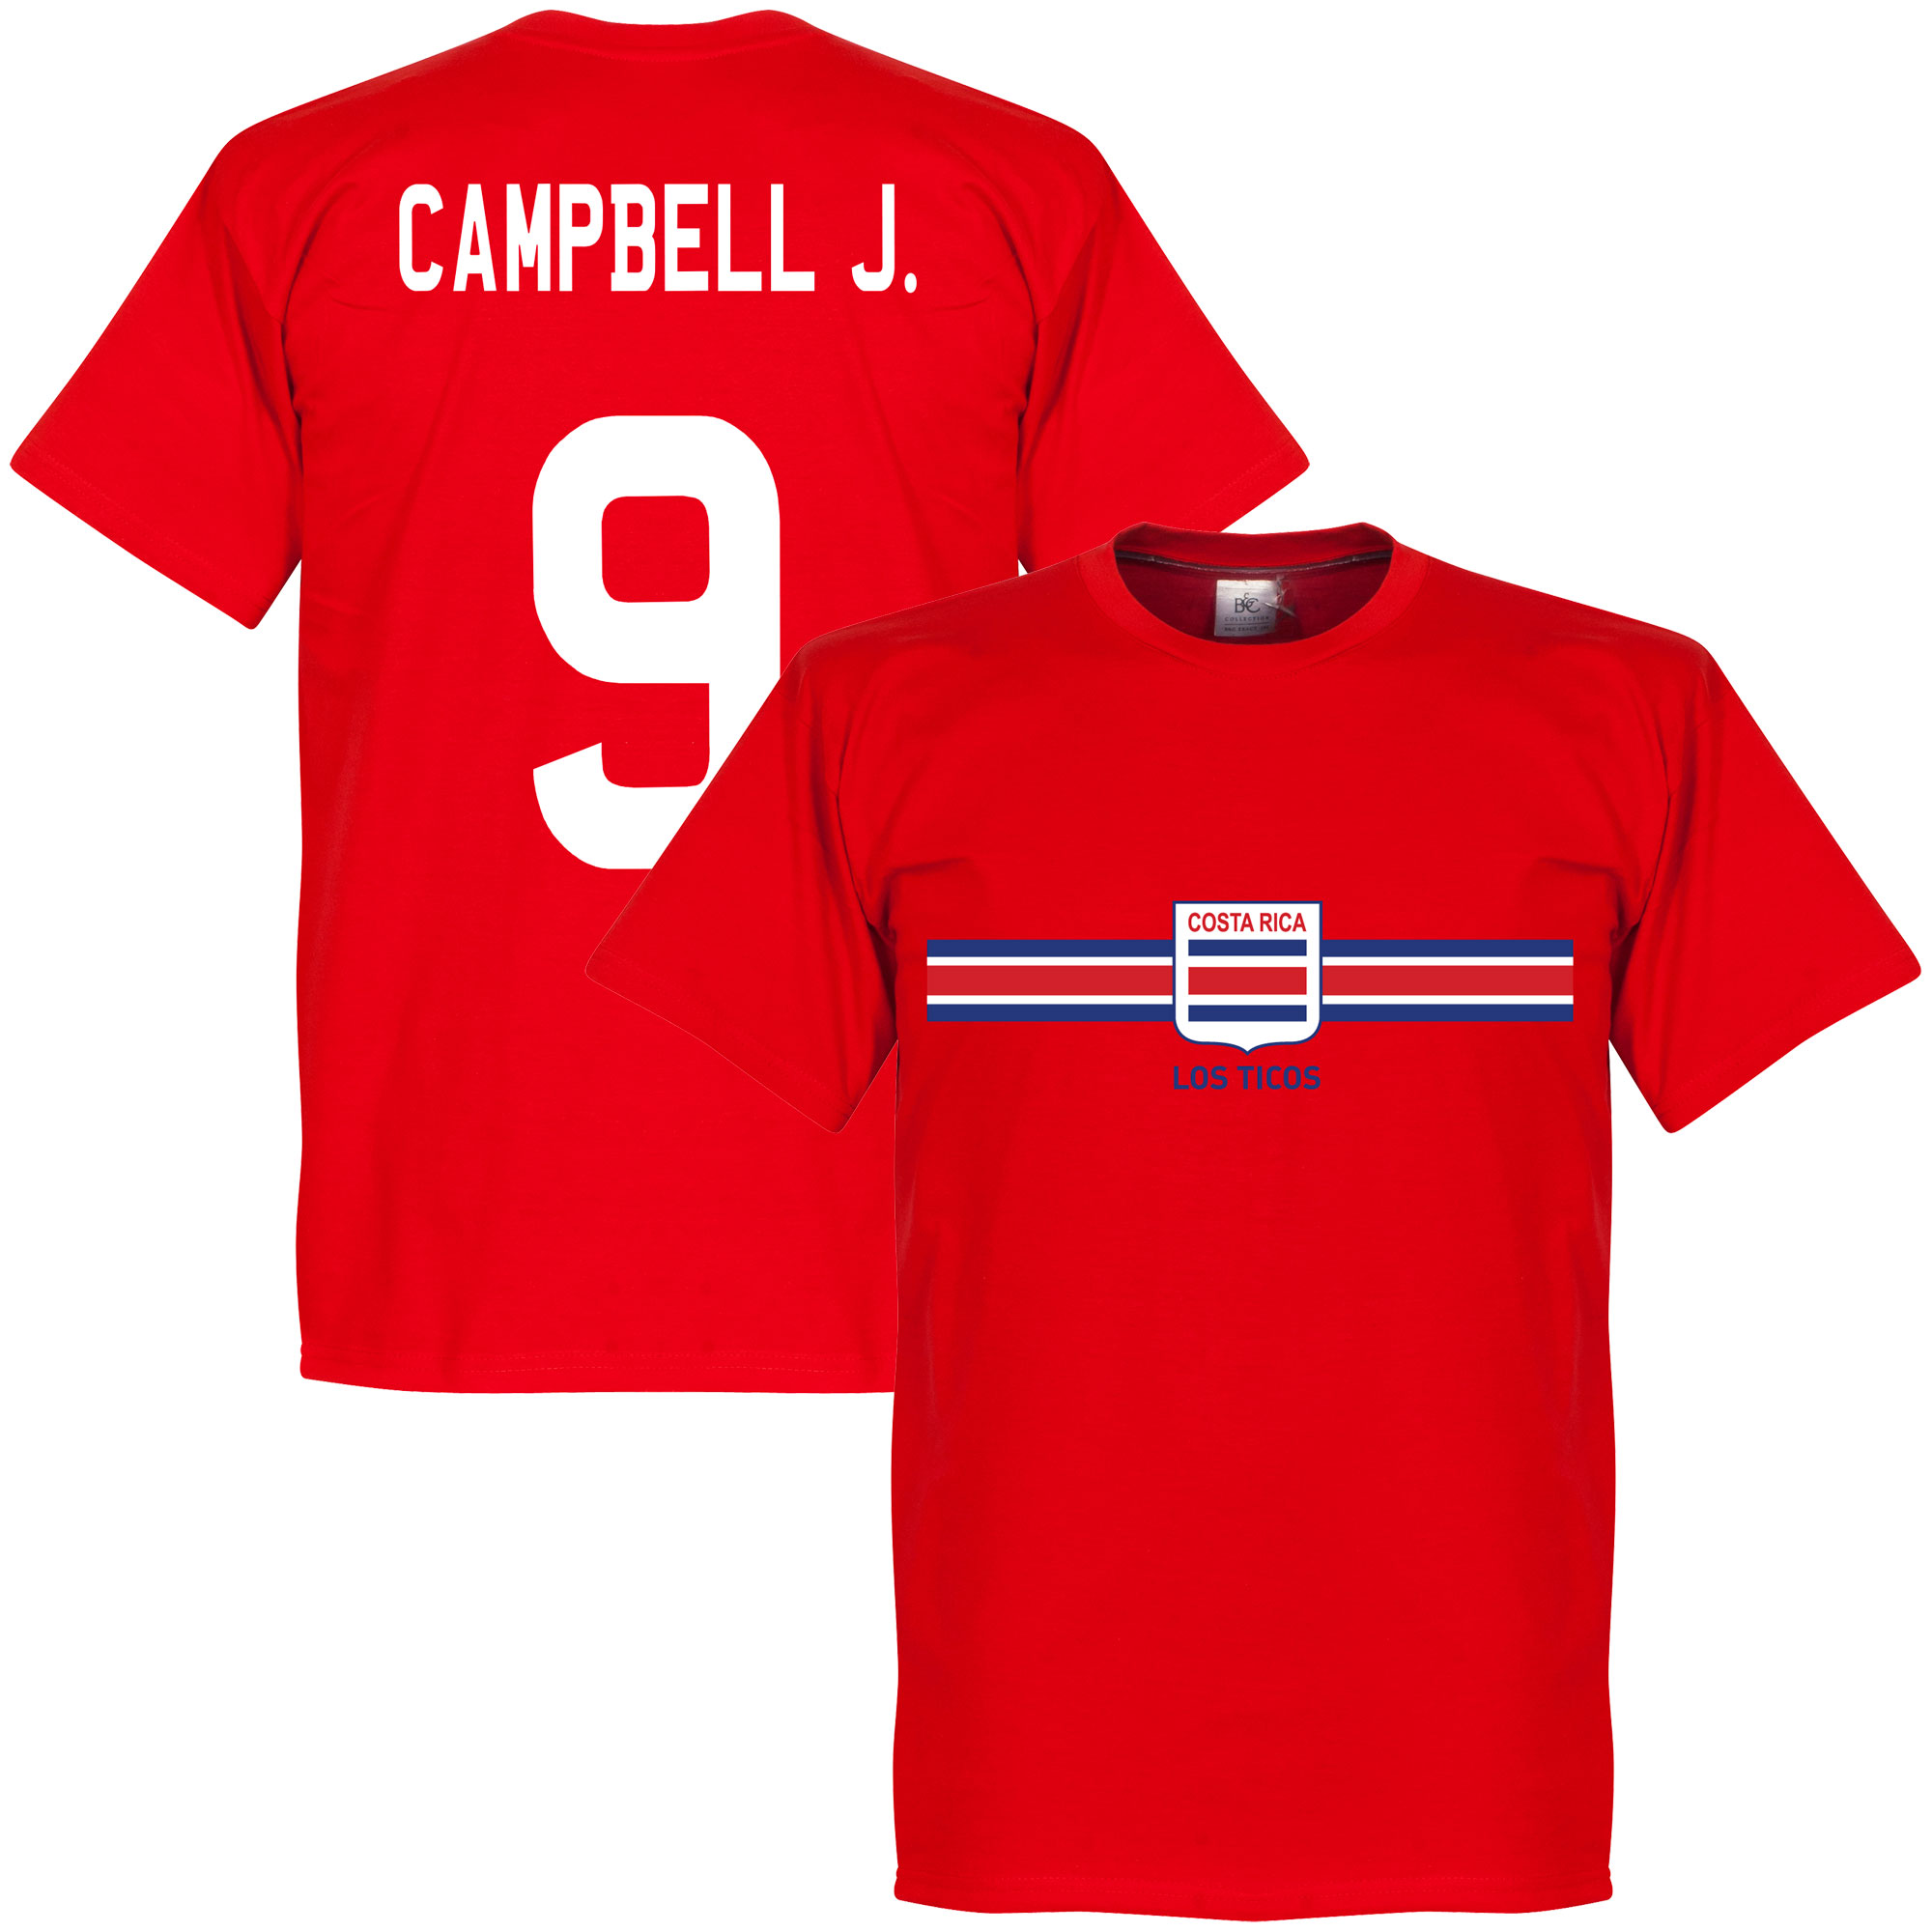 Costa Rica Campbell J. Tee - Red - S